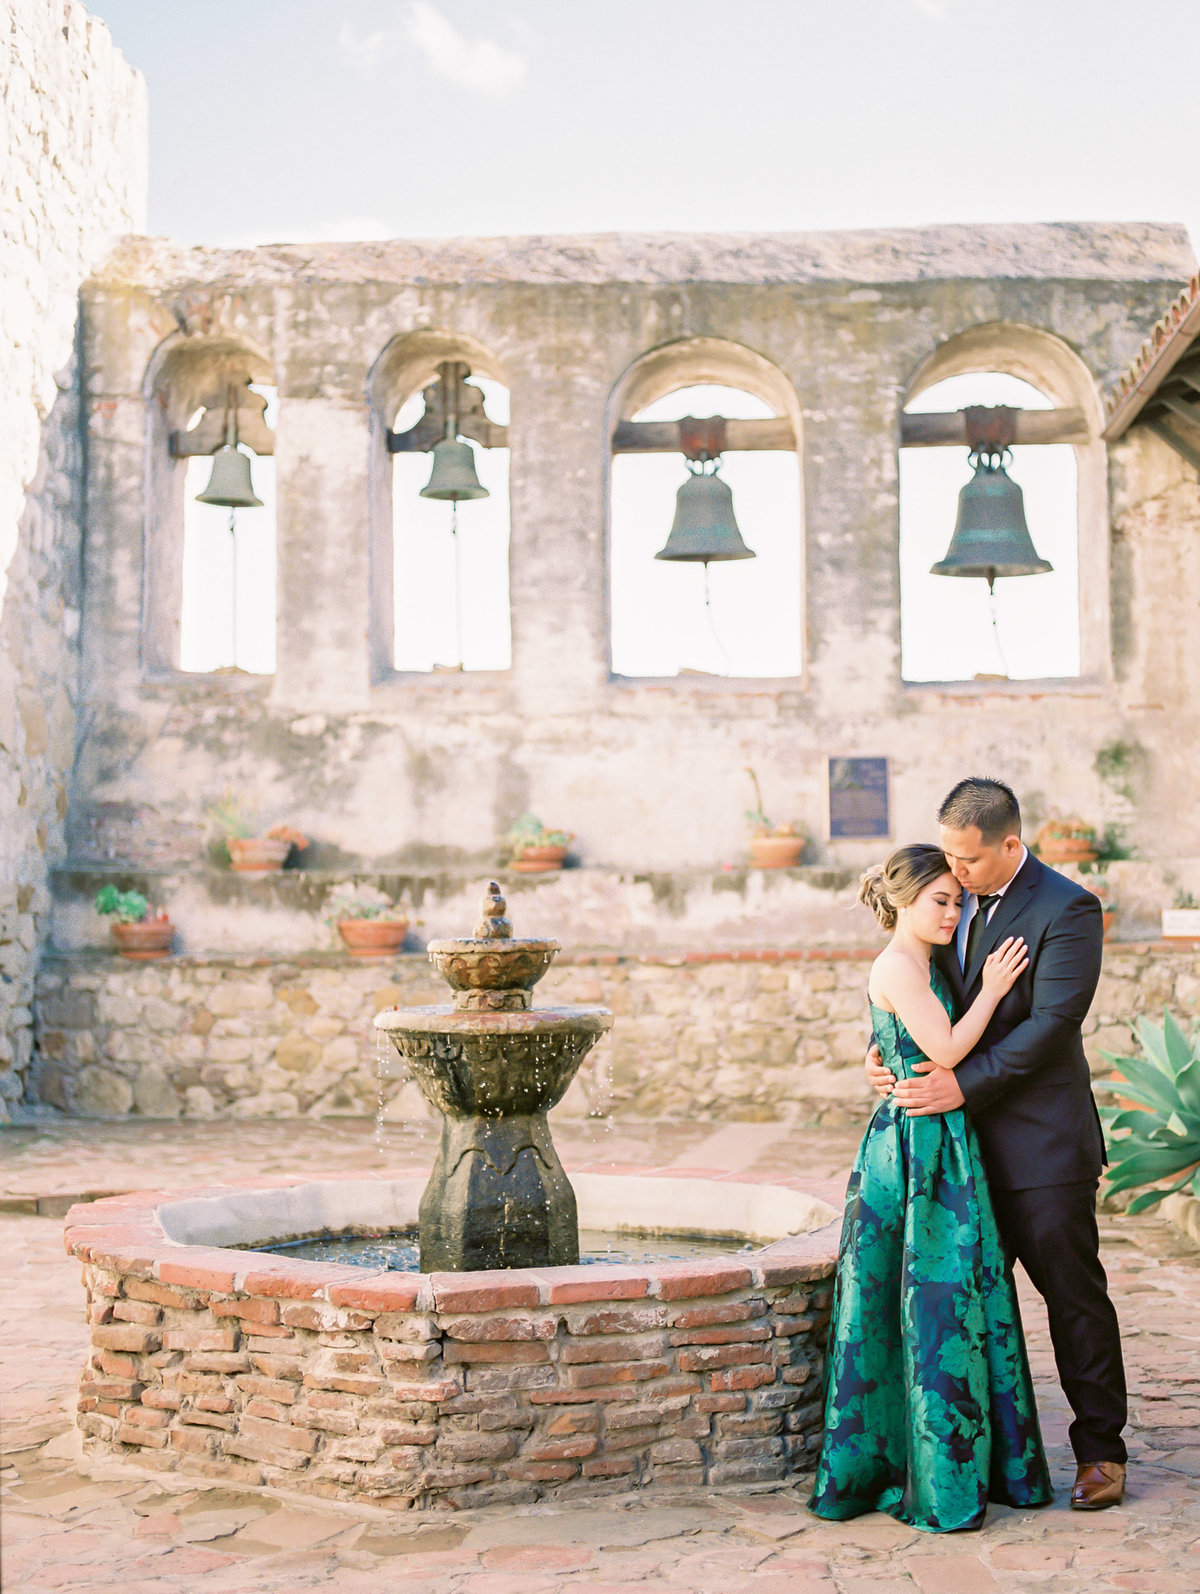 Babsie-Ly-Photography-San-Juan-Capistrano-Missions-Engagement-Session-Asian-Photographer-003